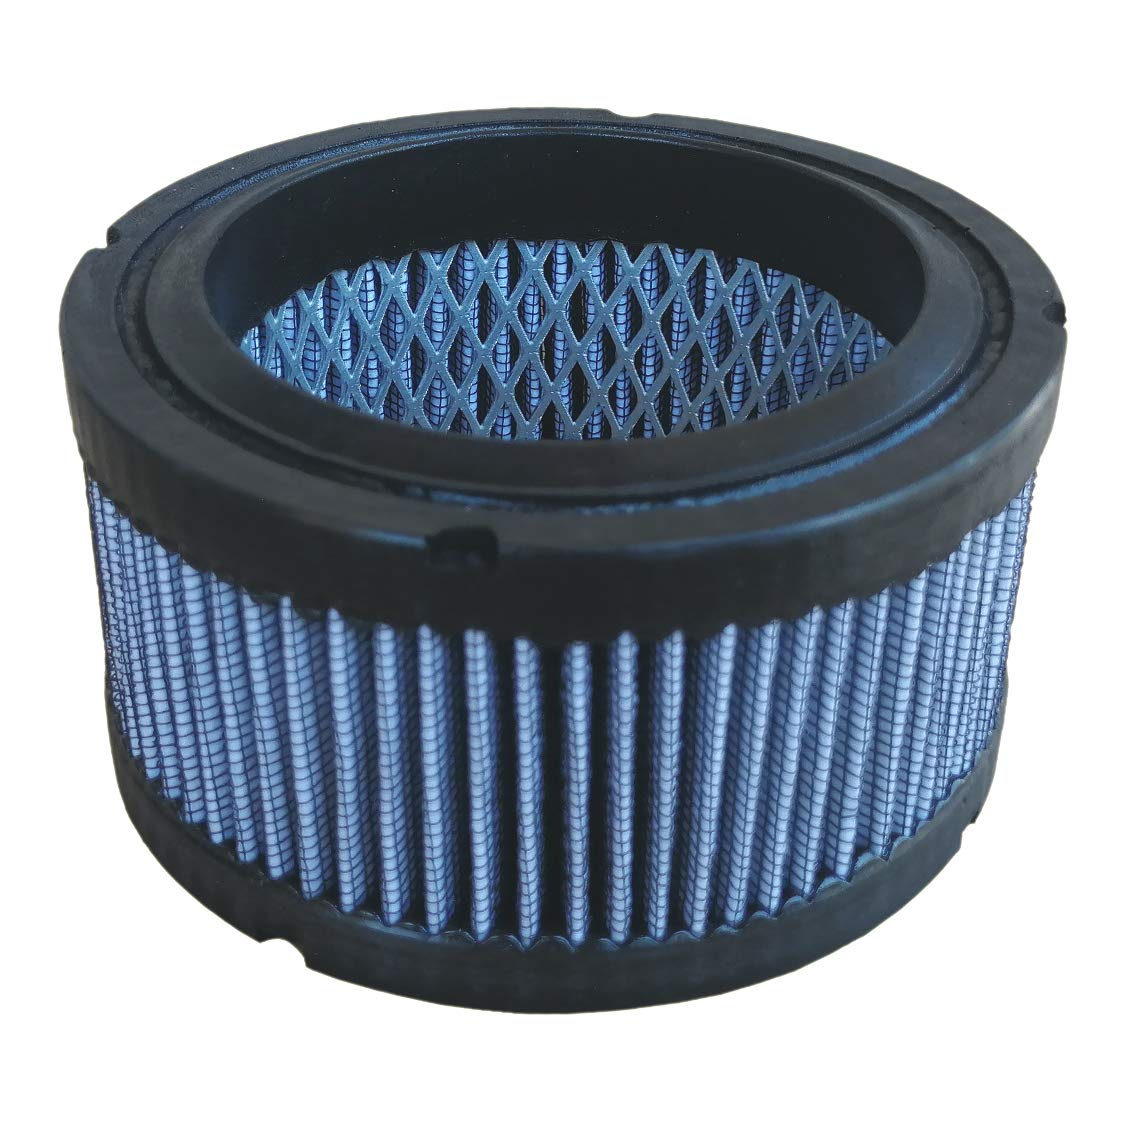 XISISUN 32170979 Air Filter Ingersoll Rand Compressor Replacement Air Filter Substitute Spare Parts